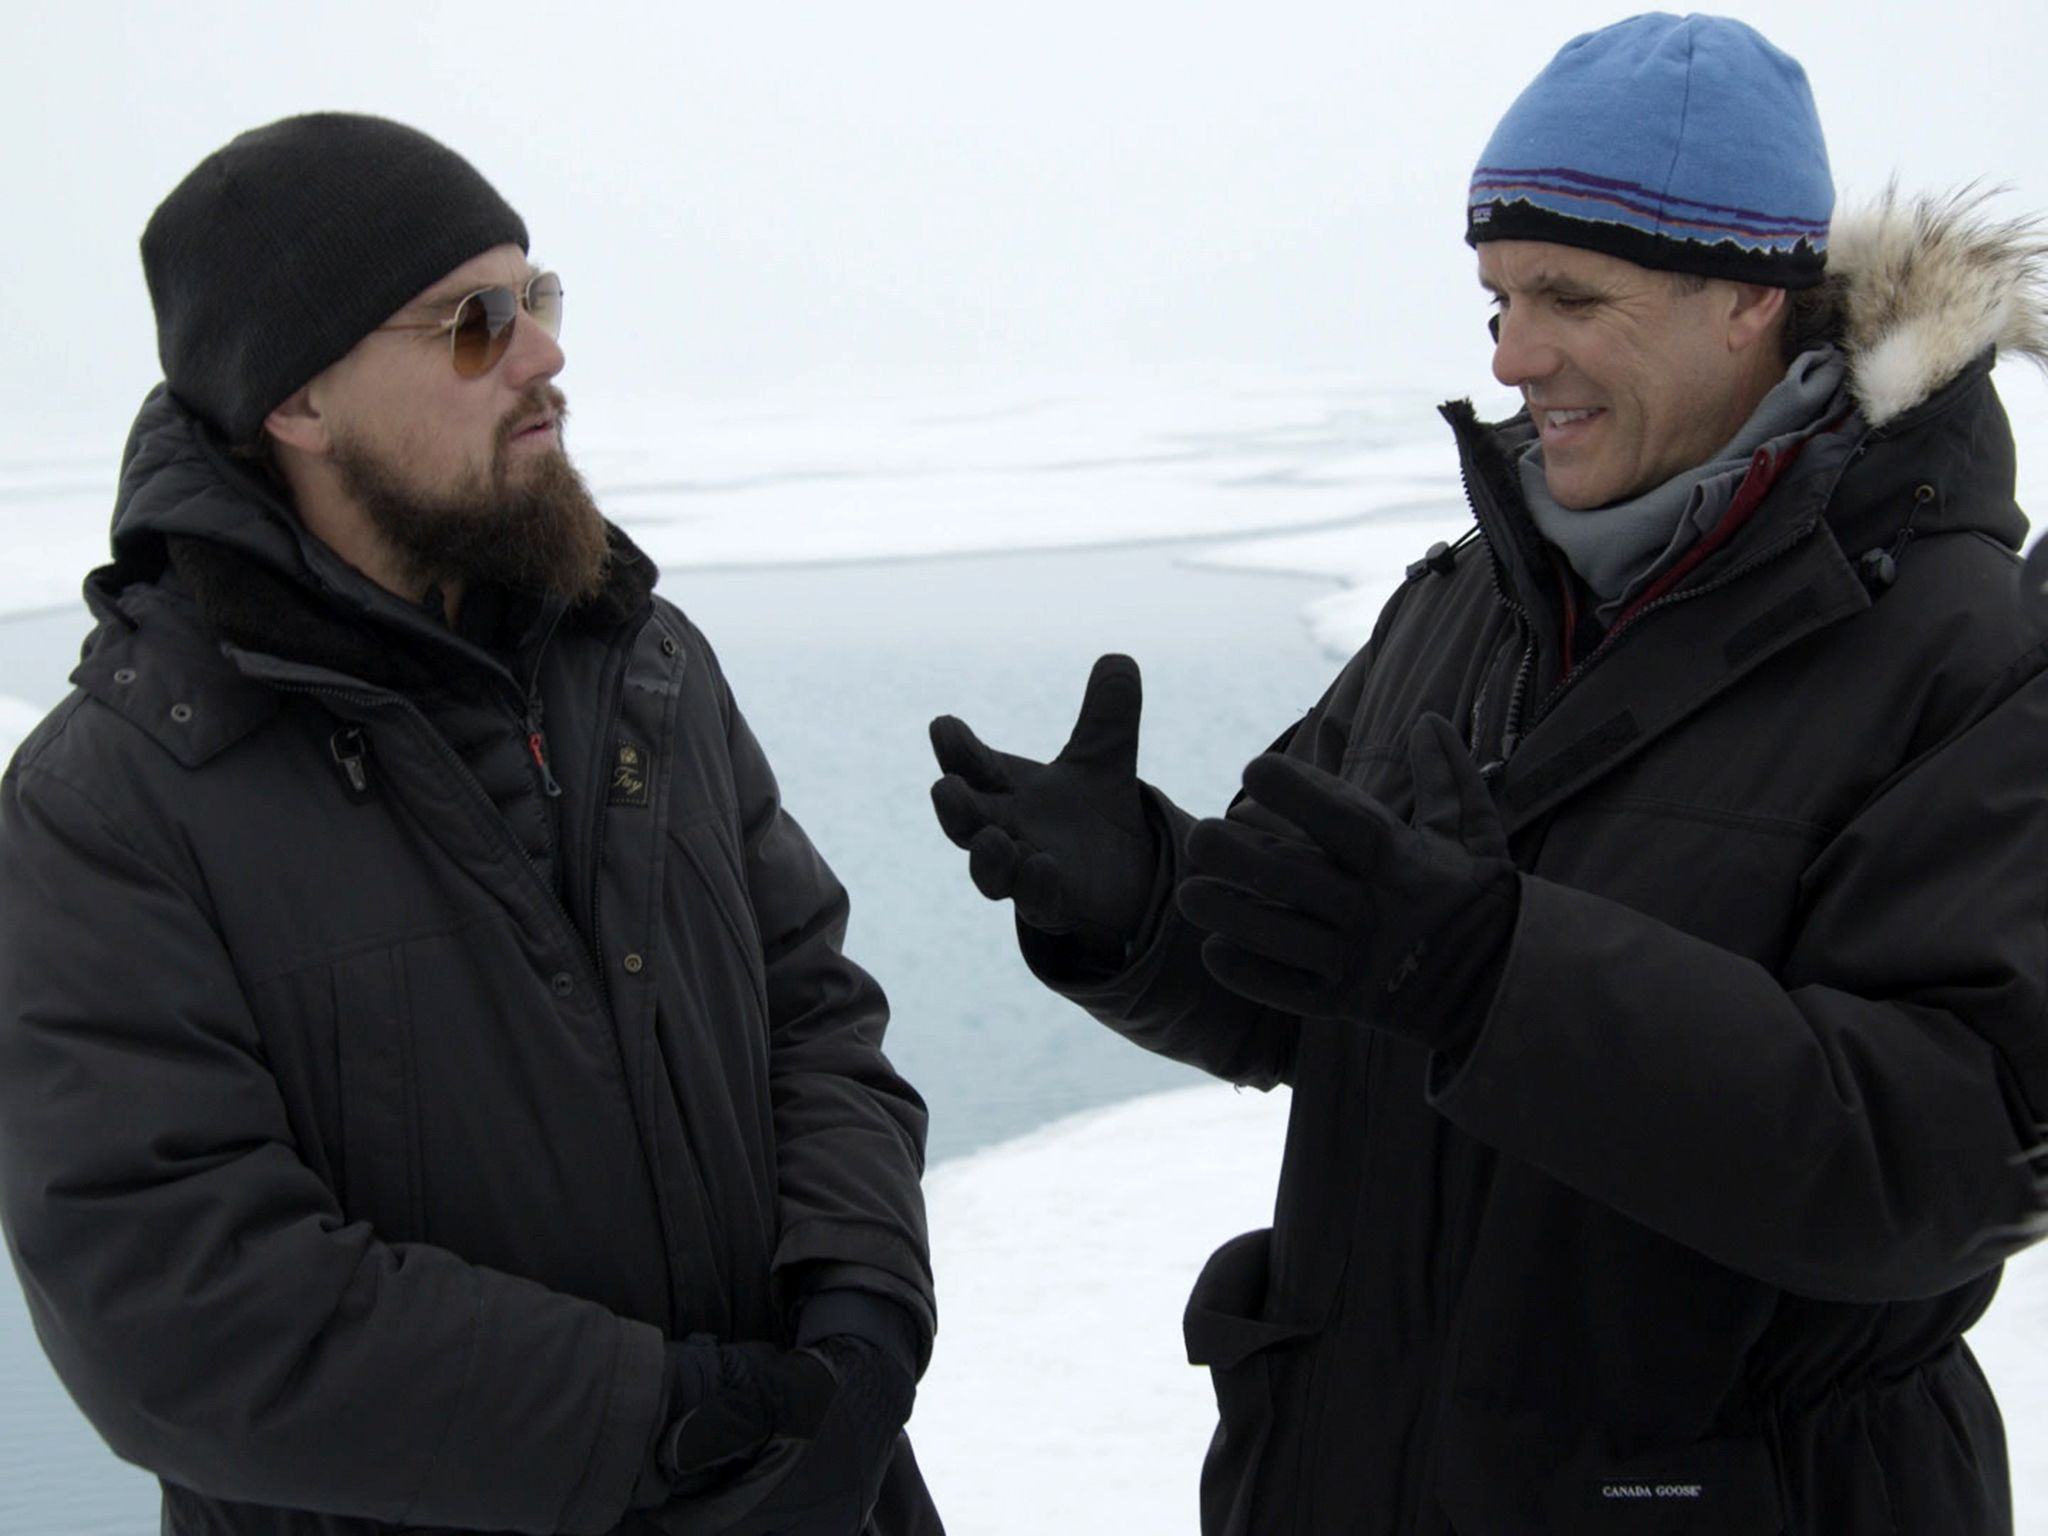 In the Arctic: Leonardo Interview with Enric Sala about meltwater. For two years, Leonardo... [Photo of the day - October 2016]